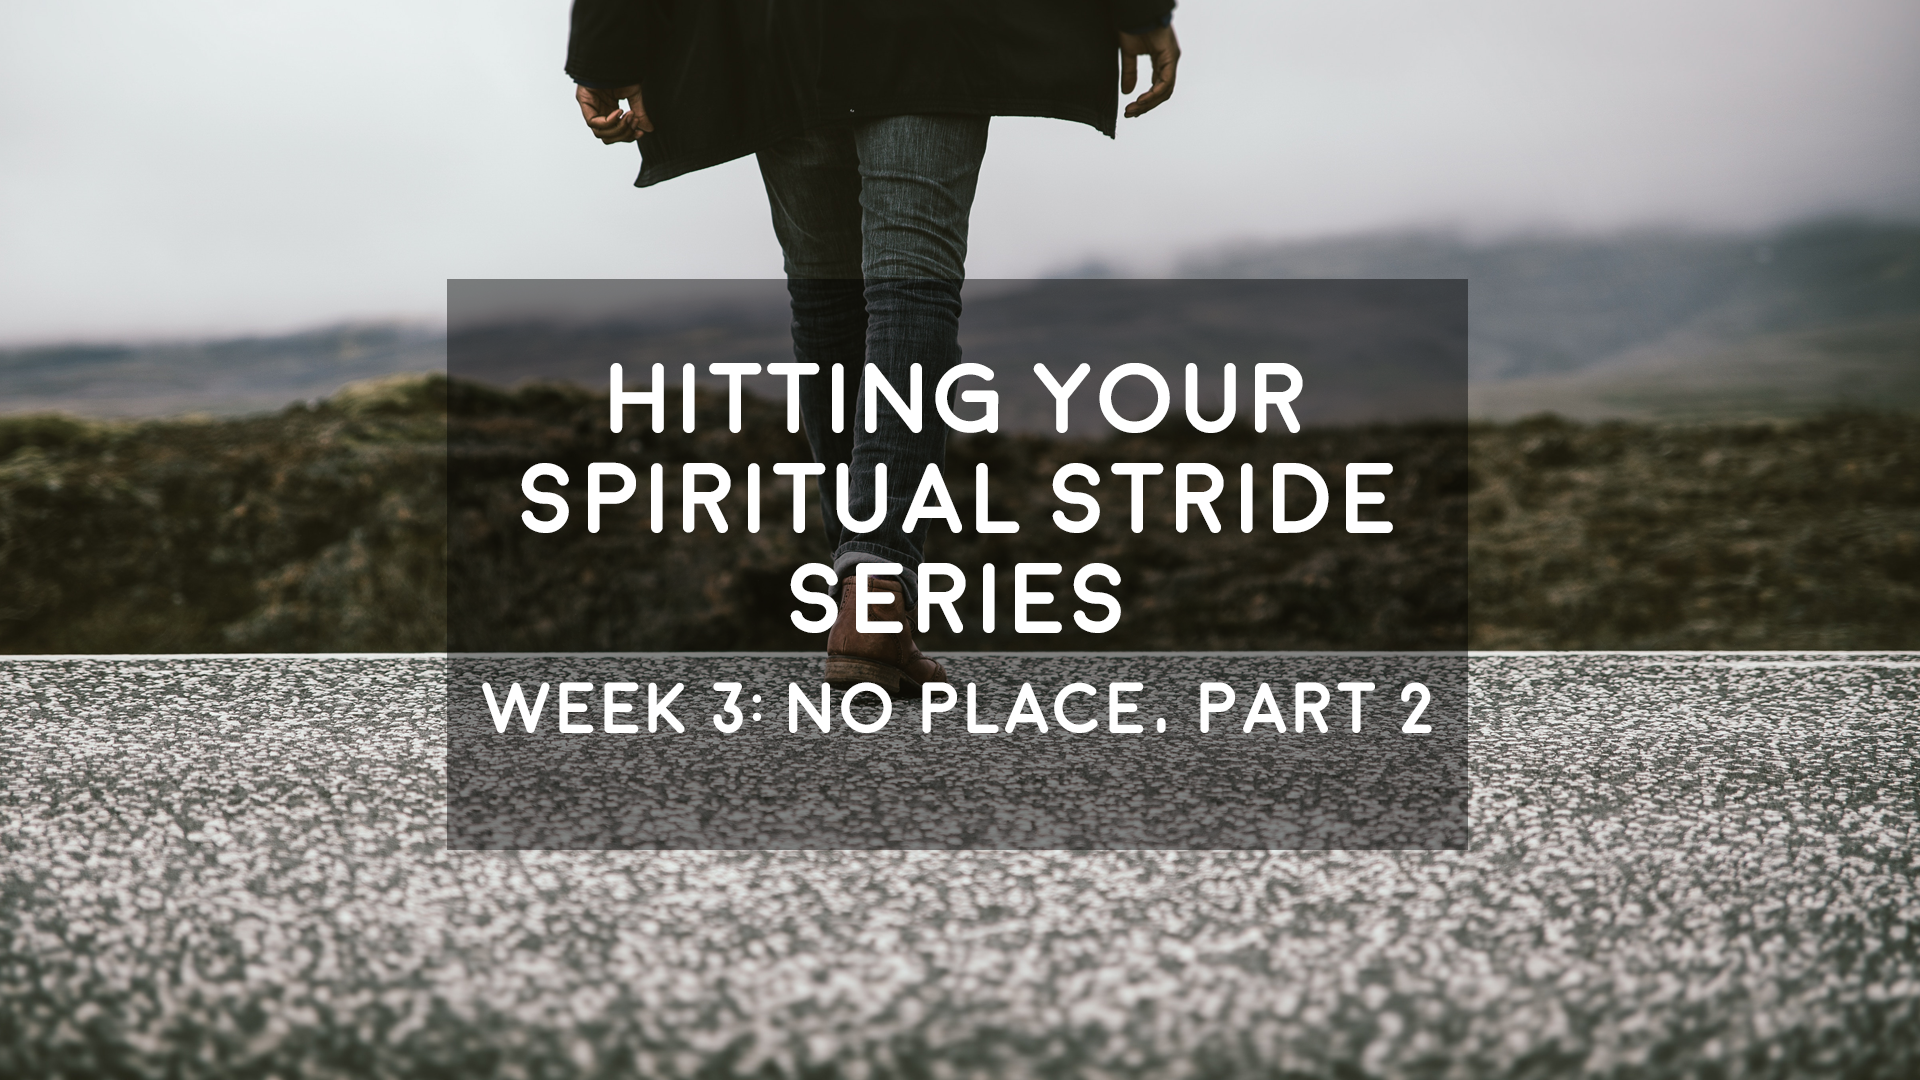 No Place Part 2 - Hitting Your Spiritual Stride - 8/26/2018